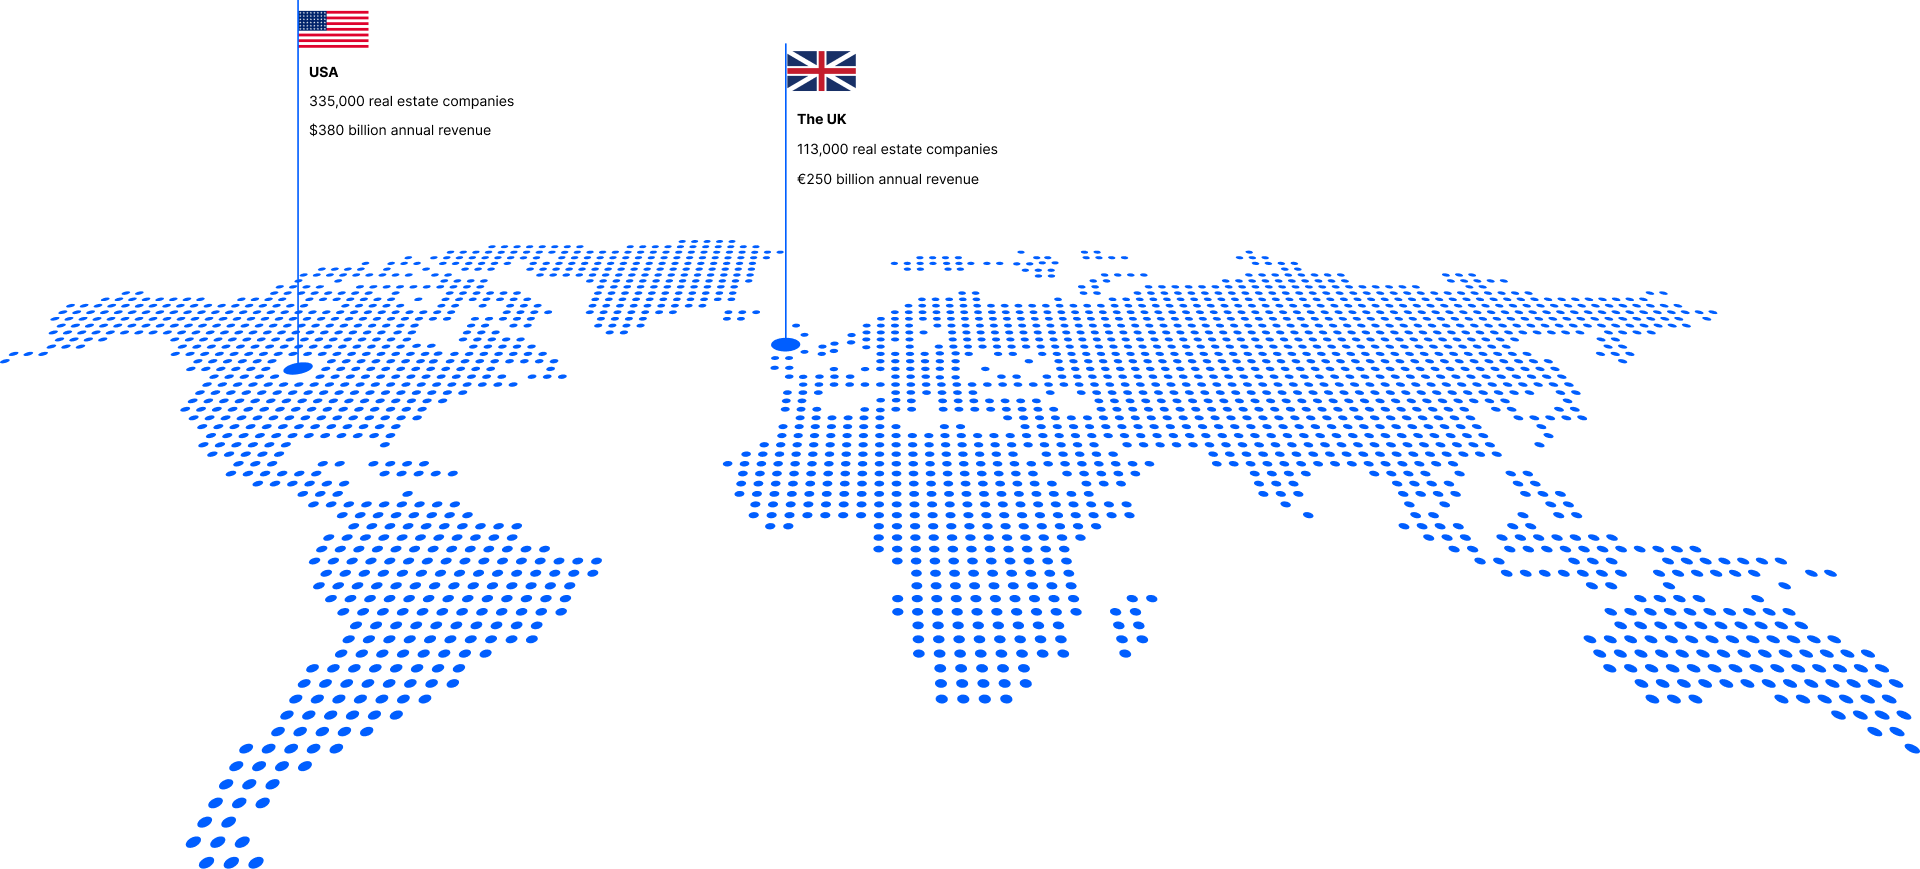 Number of real-estate companies in the US and the UK